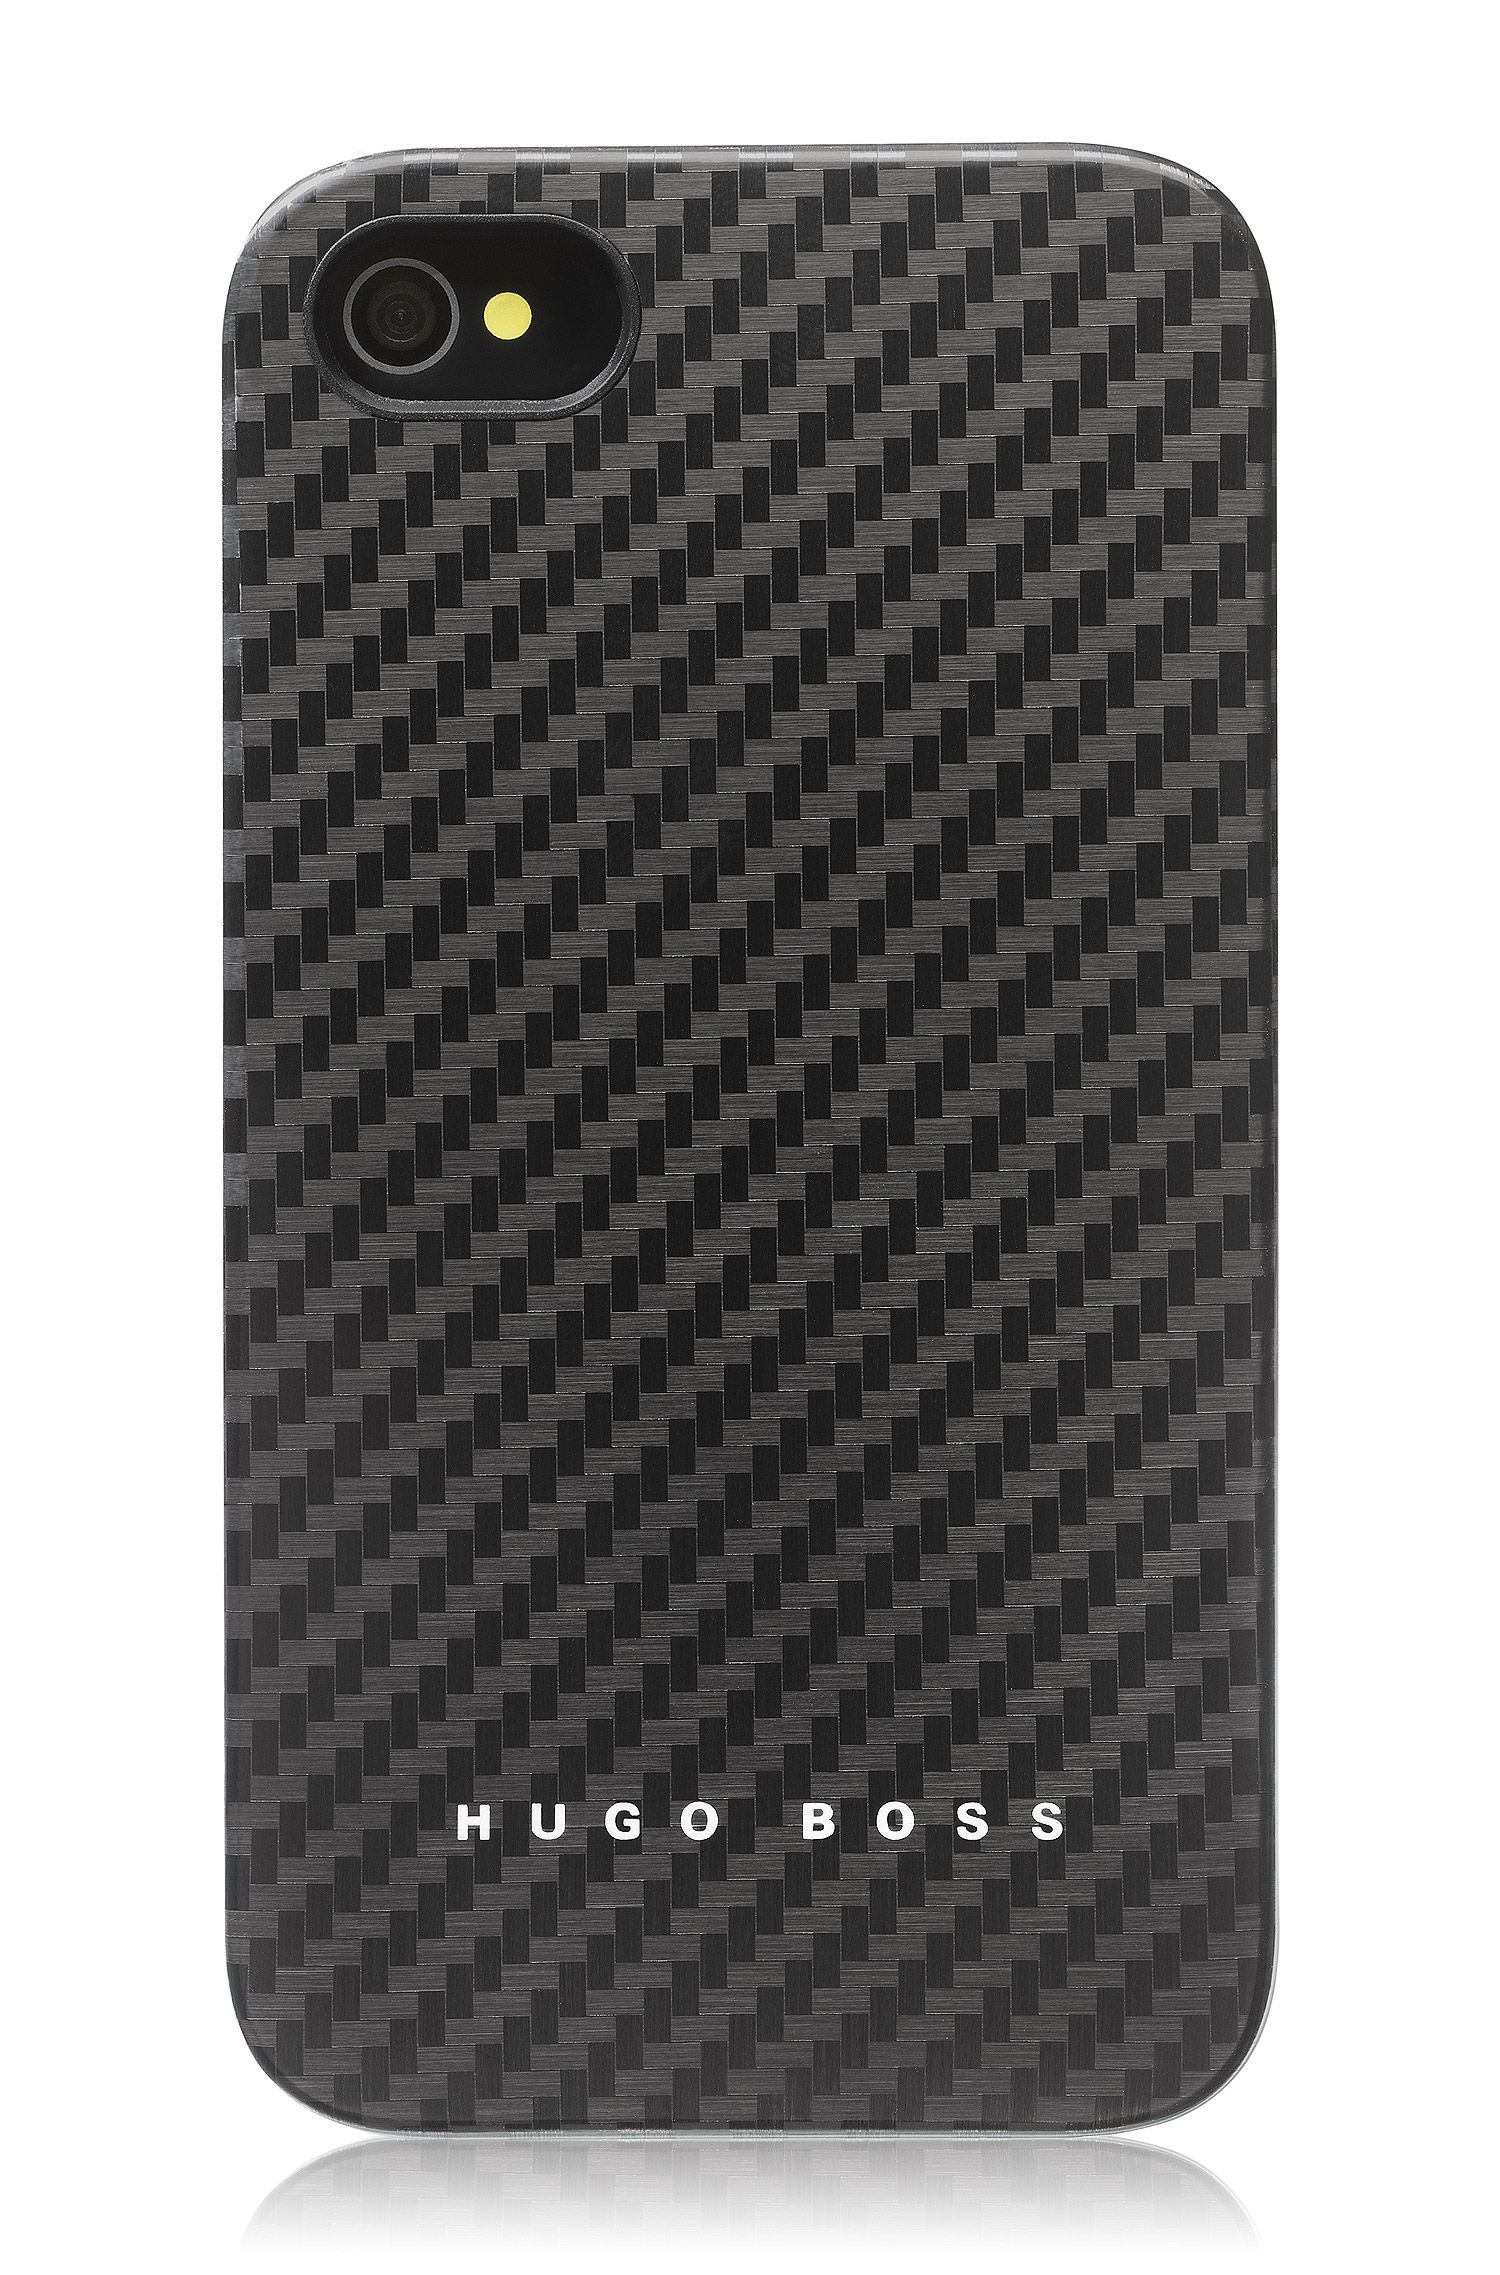 Coque rigide pour iPhone 4/4S, Carbon